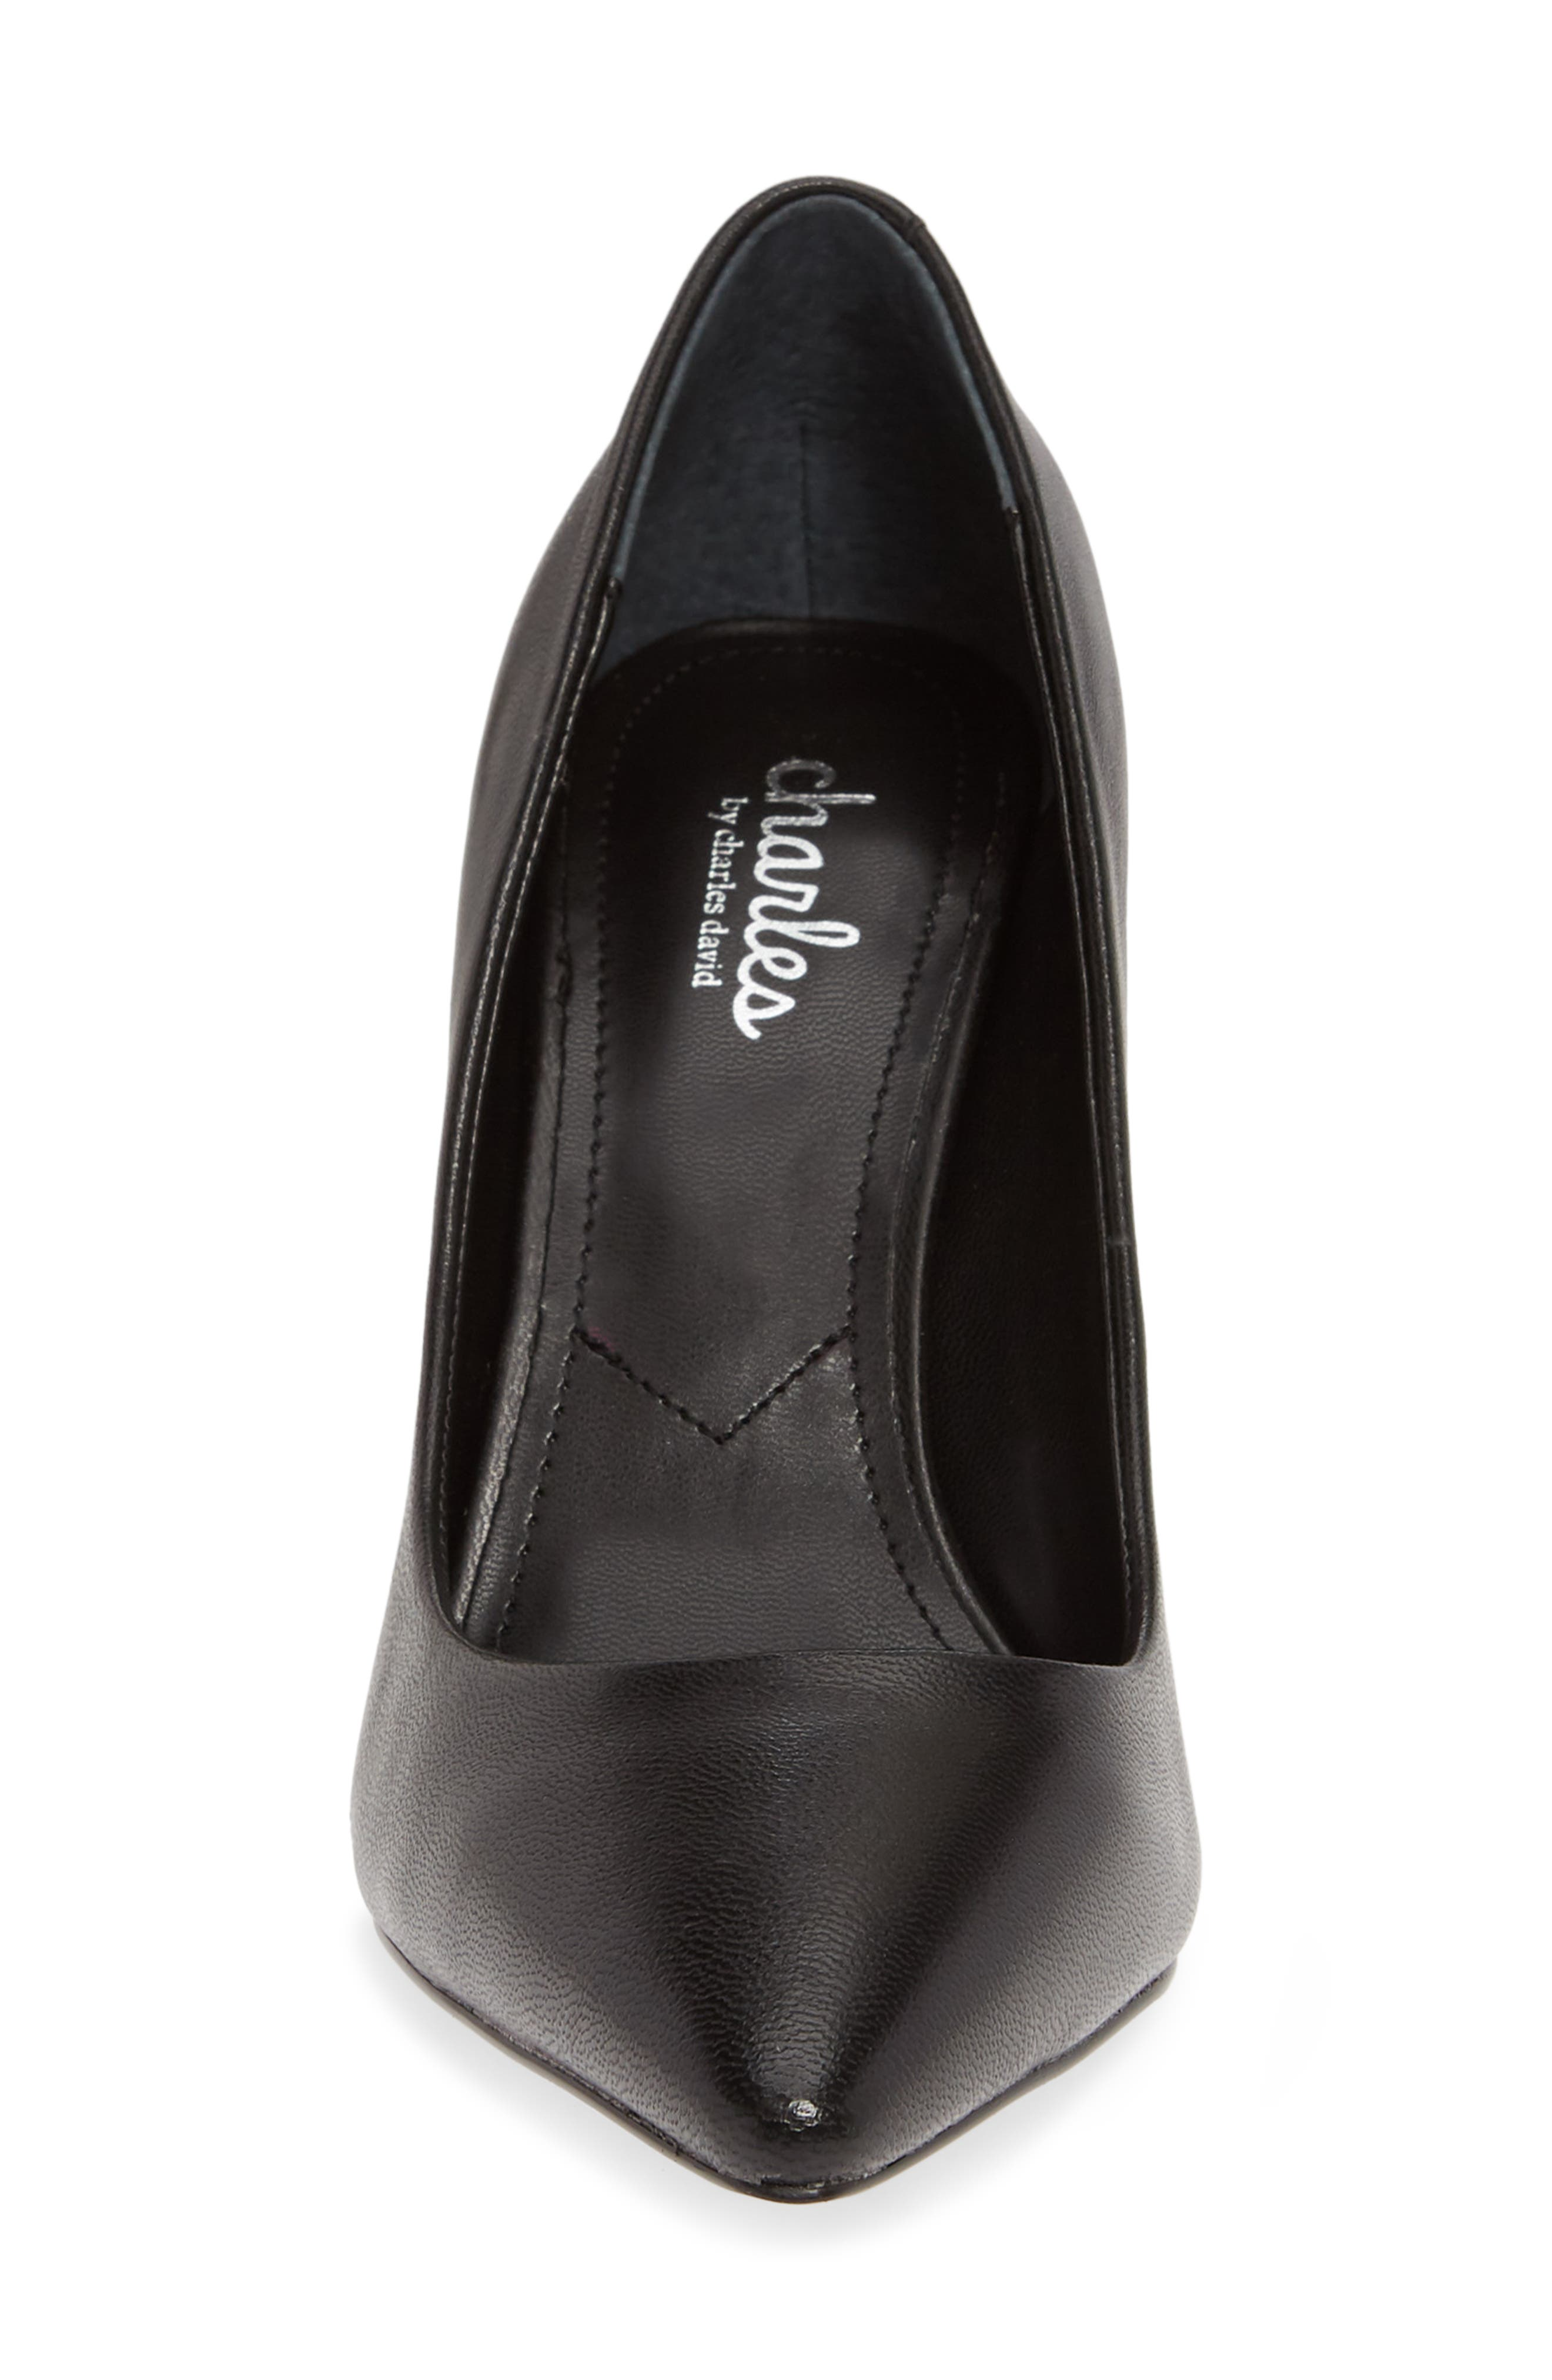 CHARLES BY CHARLES DAVID,                             Vicky Pump,                             Alternate thumbnail 4, color,                             BLACK LEATHER